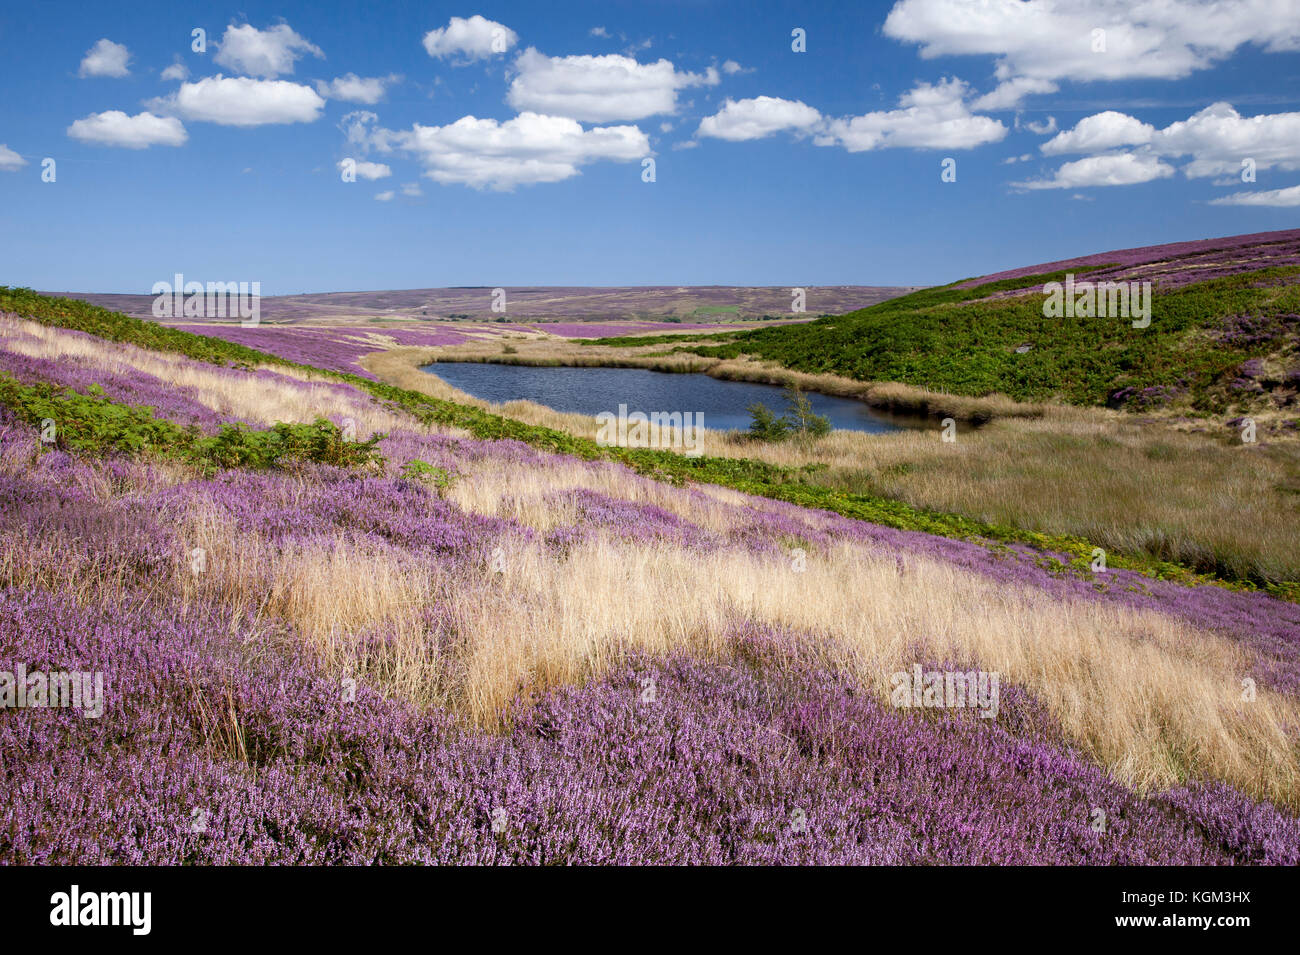 The Tarn Two Howes Rigg above Goathland North York Moors national park North Yorkshire, England,UK - Stock Image